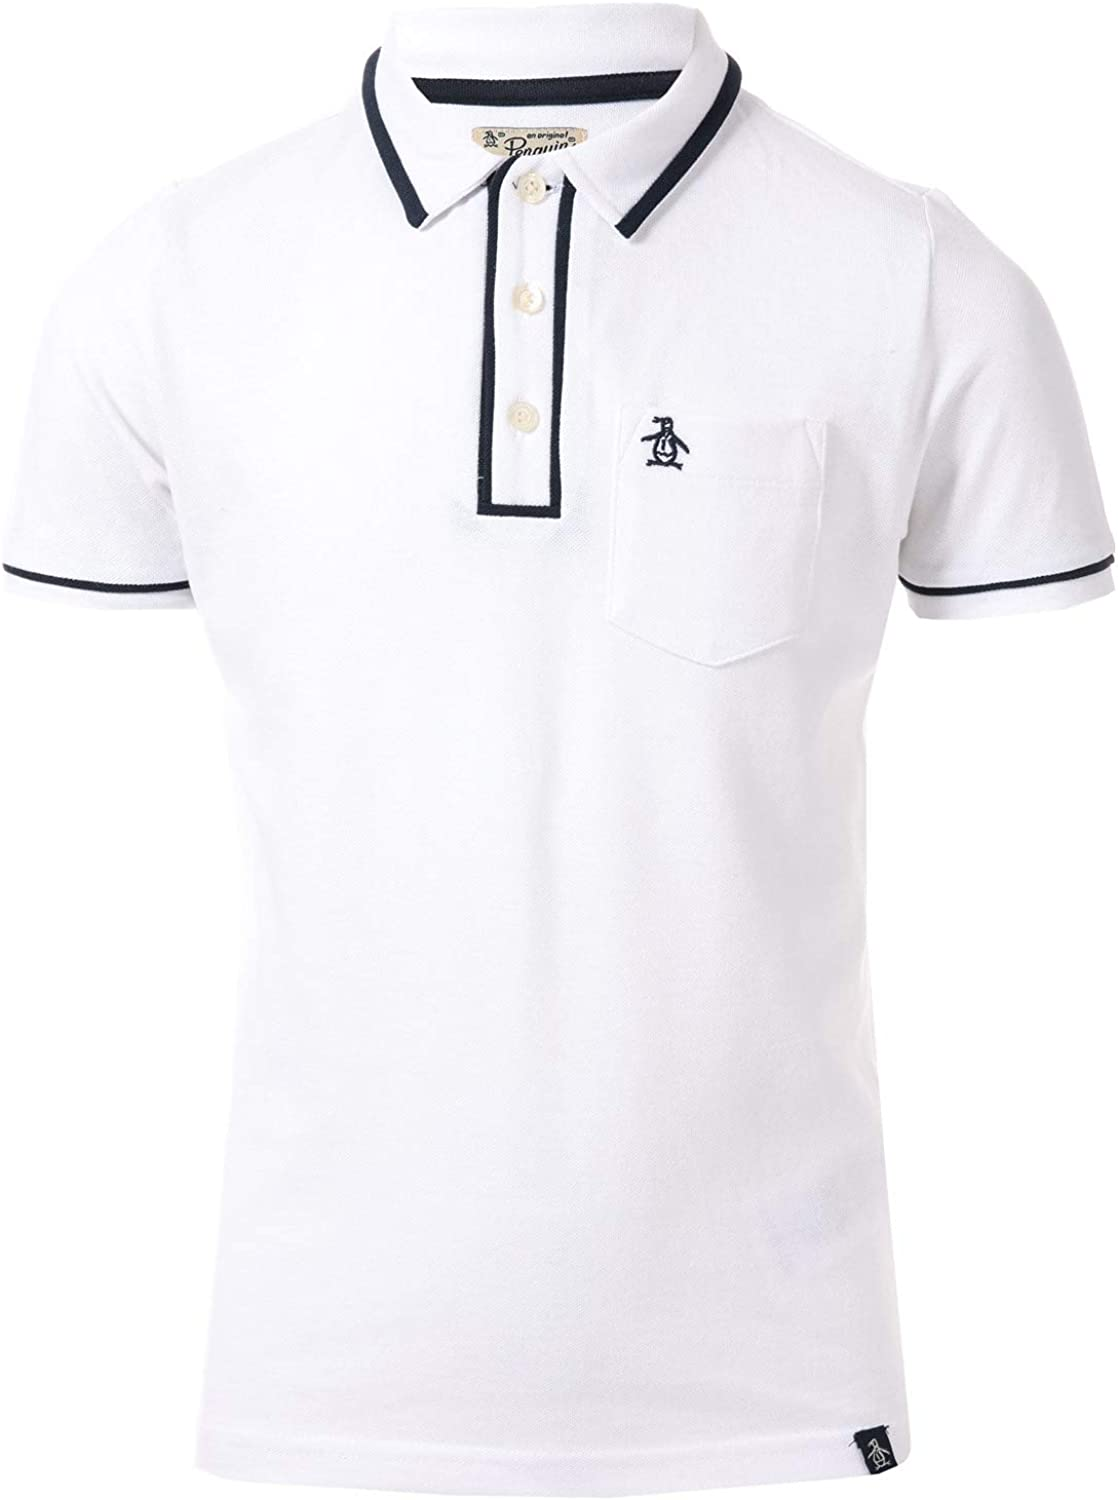 ORIGINAL PENGUIN - Polo - para niño: Amazon.es: Ropa y accesorios